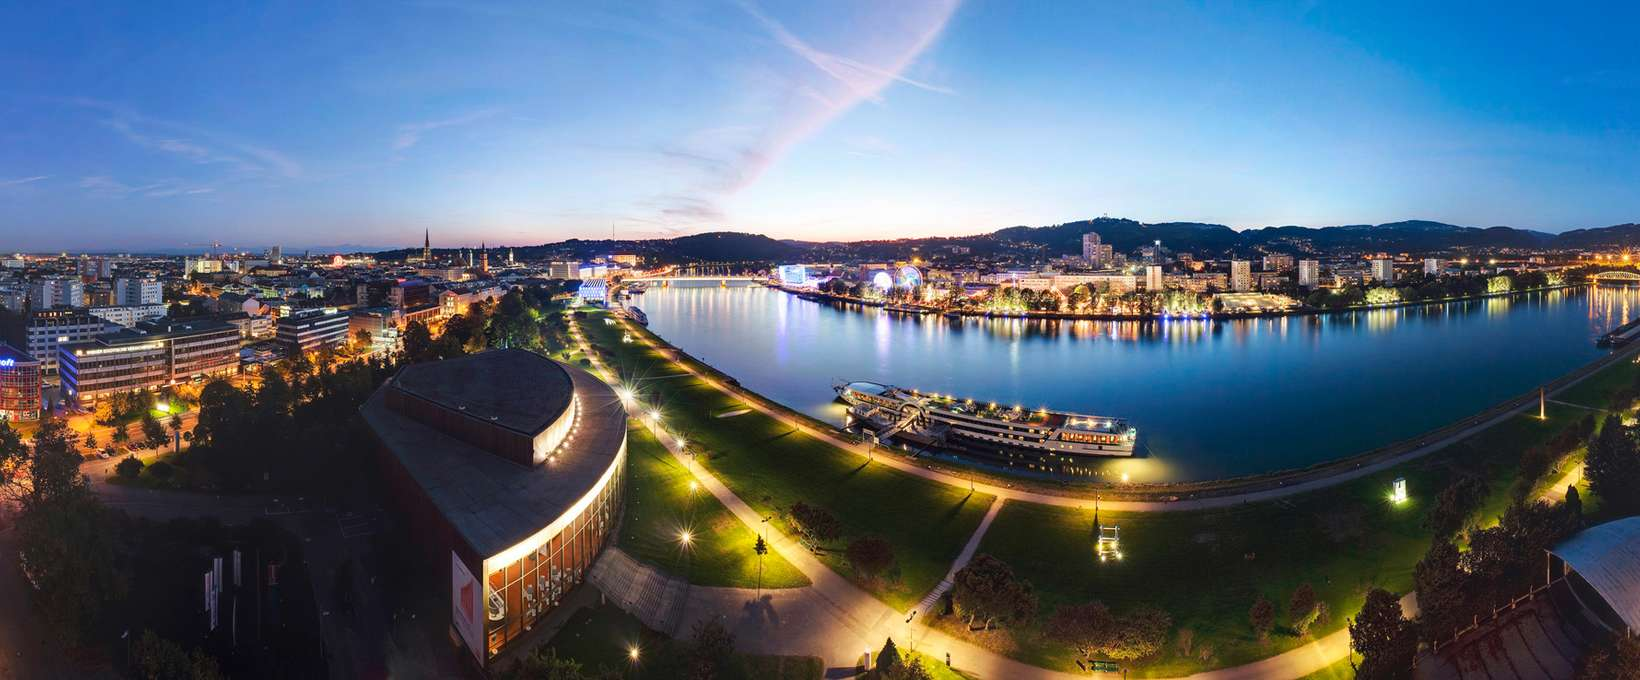 Panorama per night with river  | Linz | © Linz Tourismus | J. Steininger